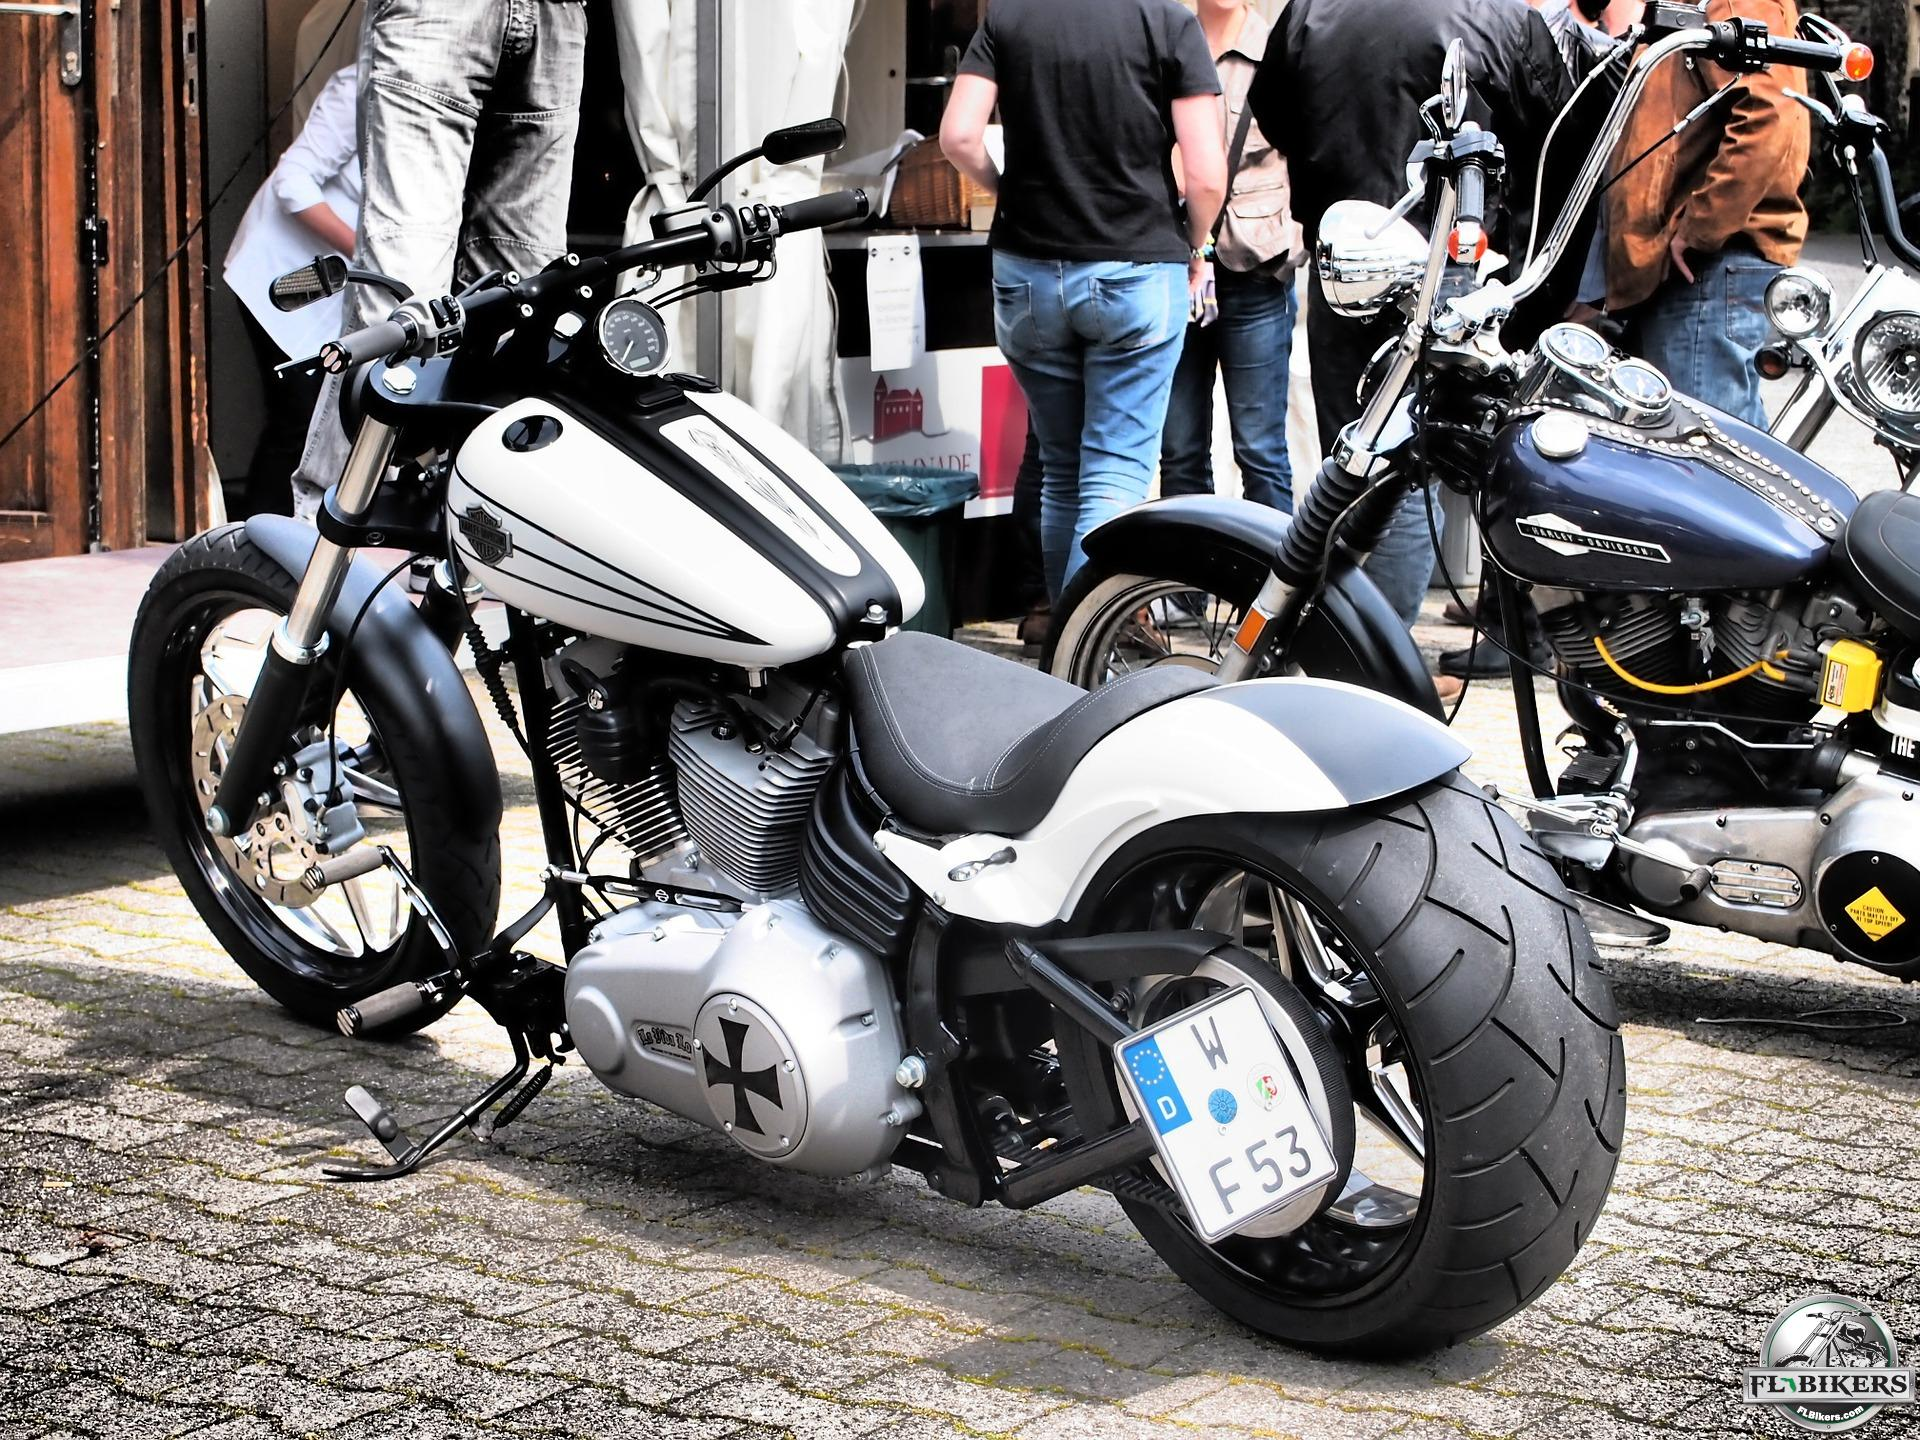 Tips to Get Your Motorcycle Ride Ready